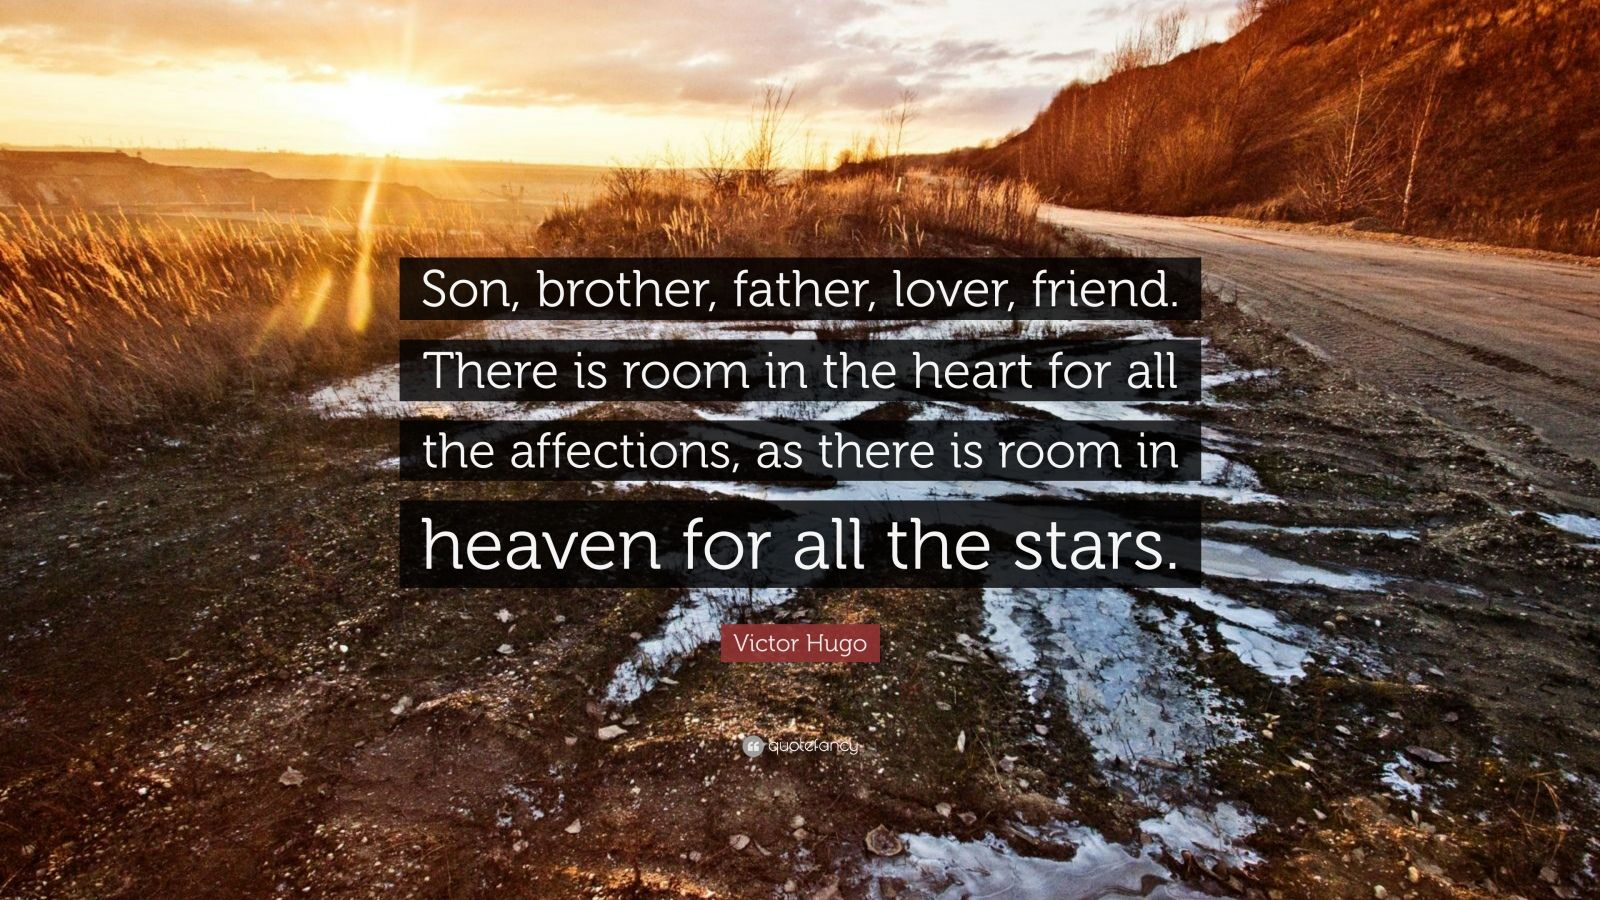 """Victor Hugo Quote: """"Son, brother, father, lover, friend. There is room in the heart for all the affections, as there is room in heaven for all the stars."""""""